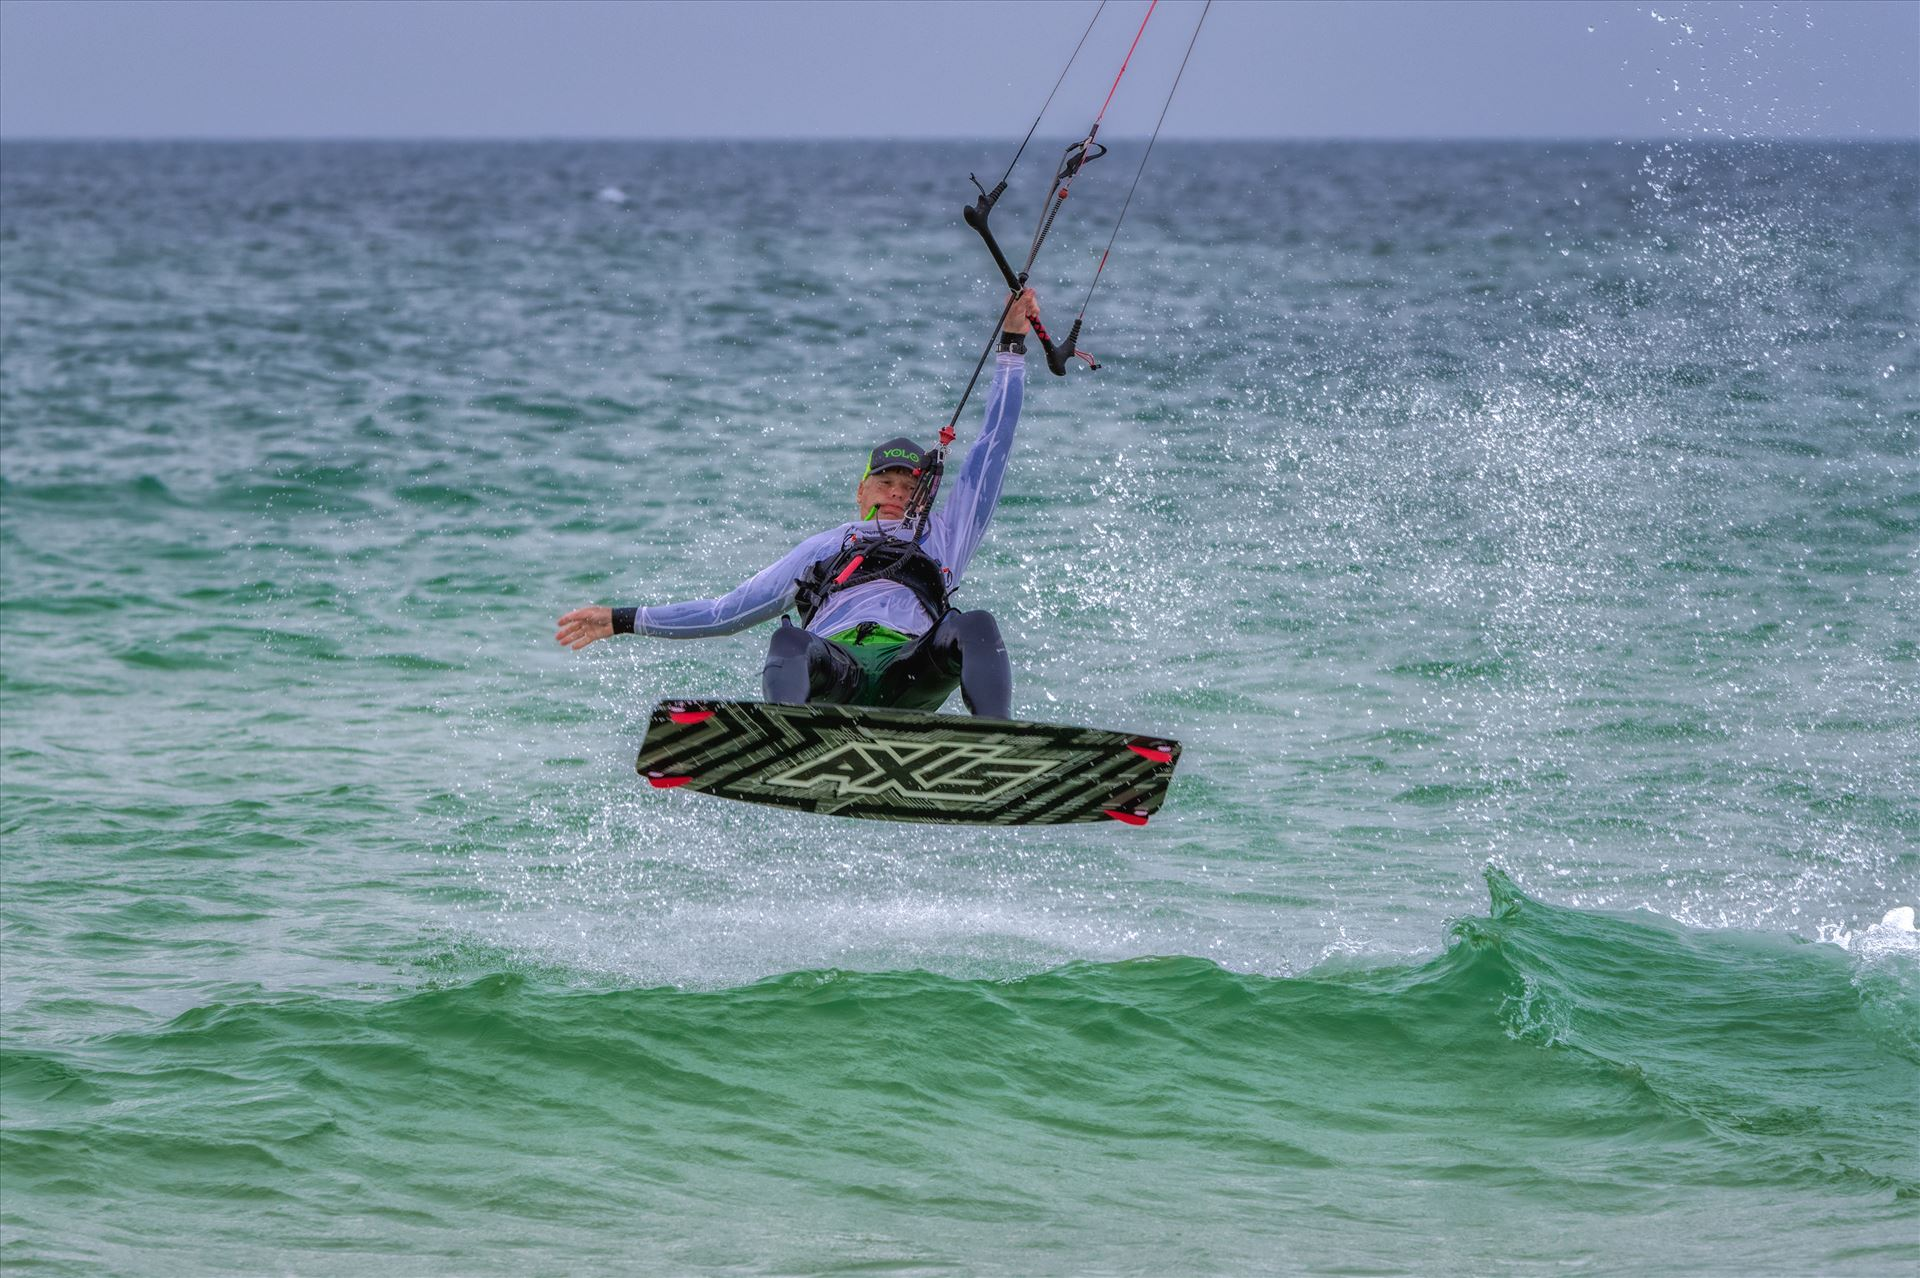 emerald Coast Kiteboarding Kiteboarding at St. Andrews State Park, Panama City, Florida by Terry Kelly Photography